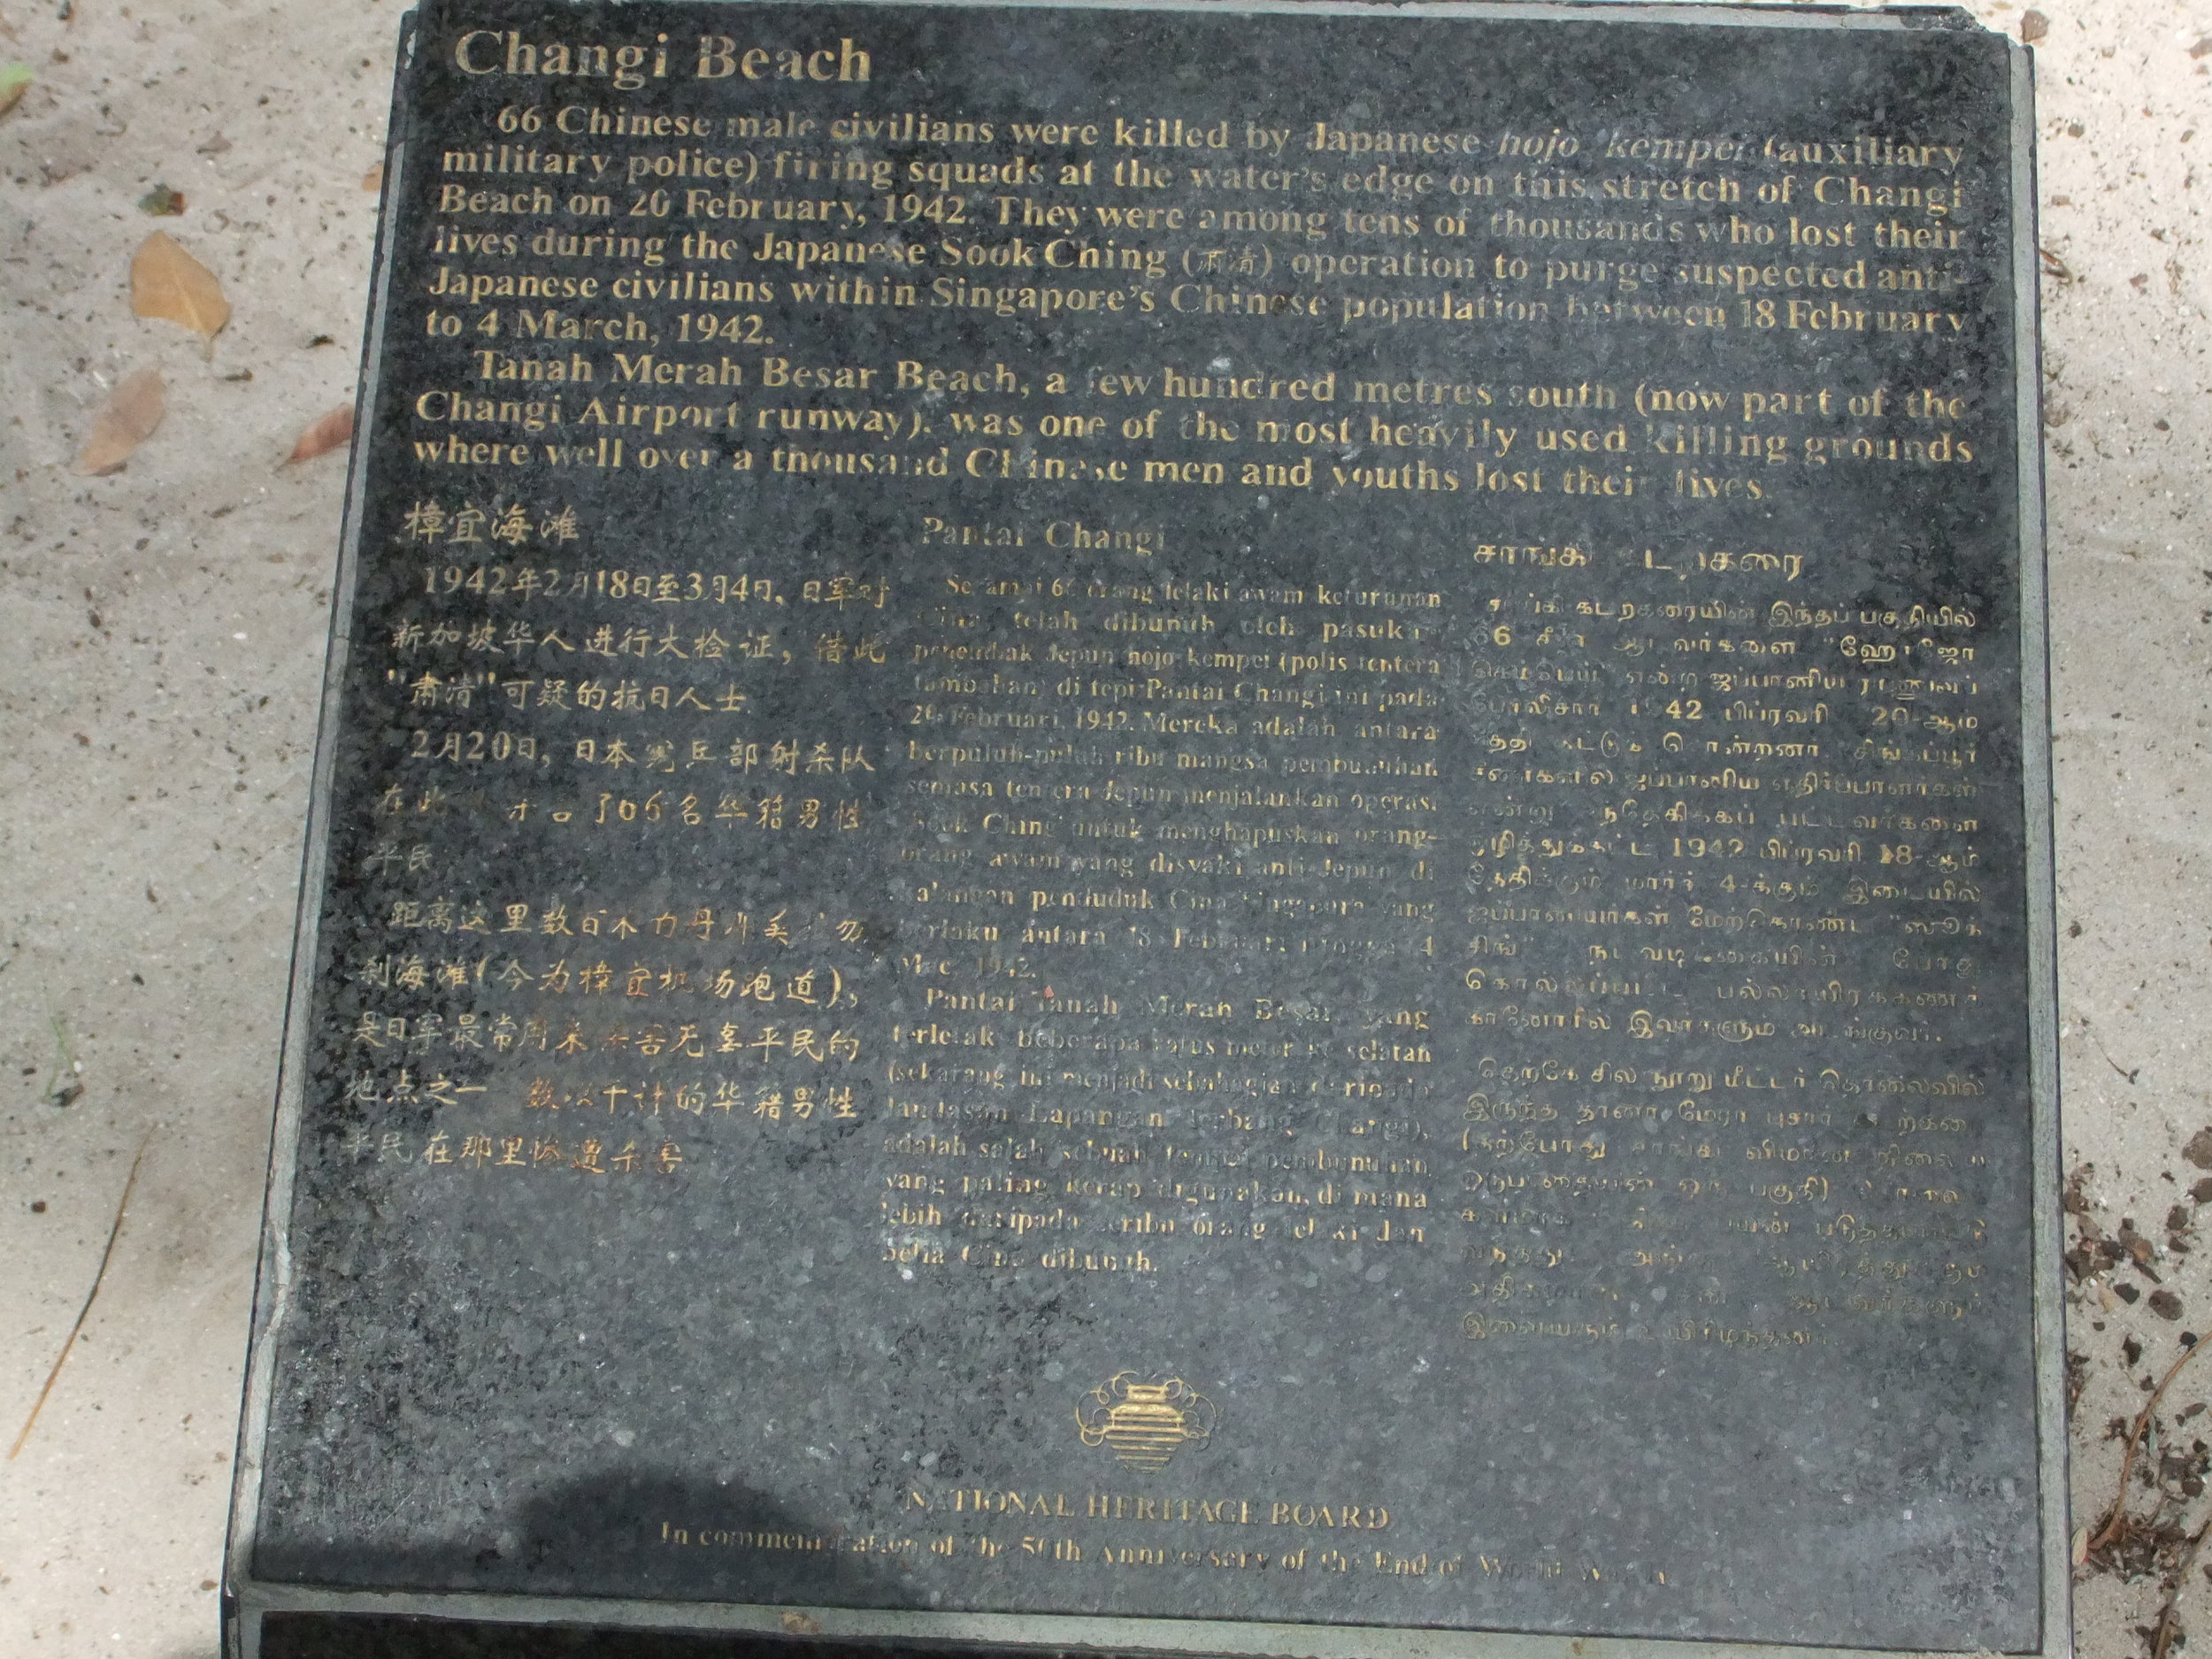 Former Sook Ching Massacre site at Changi Beach